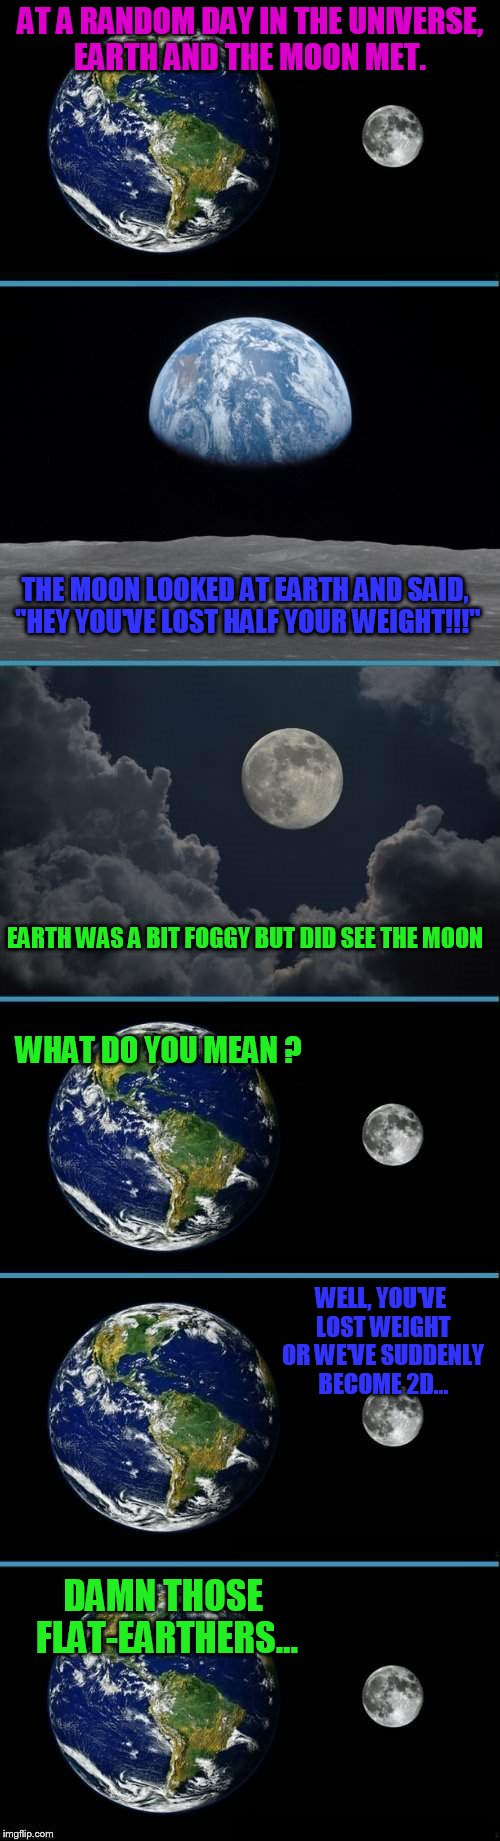 "Celestial encounter  | AT A RANDOM DAY IN THE UNIVERSE, EARTH AND THE MOON MET. THE MOON LOOKED AT EARTH AND SAID, ""HEY YOU'VE LOST HALF YOUR WEIGHT!!!"" EARTH WAS  